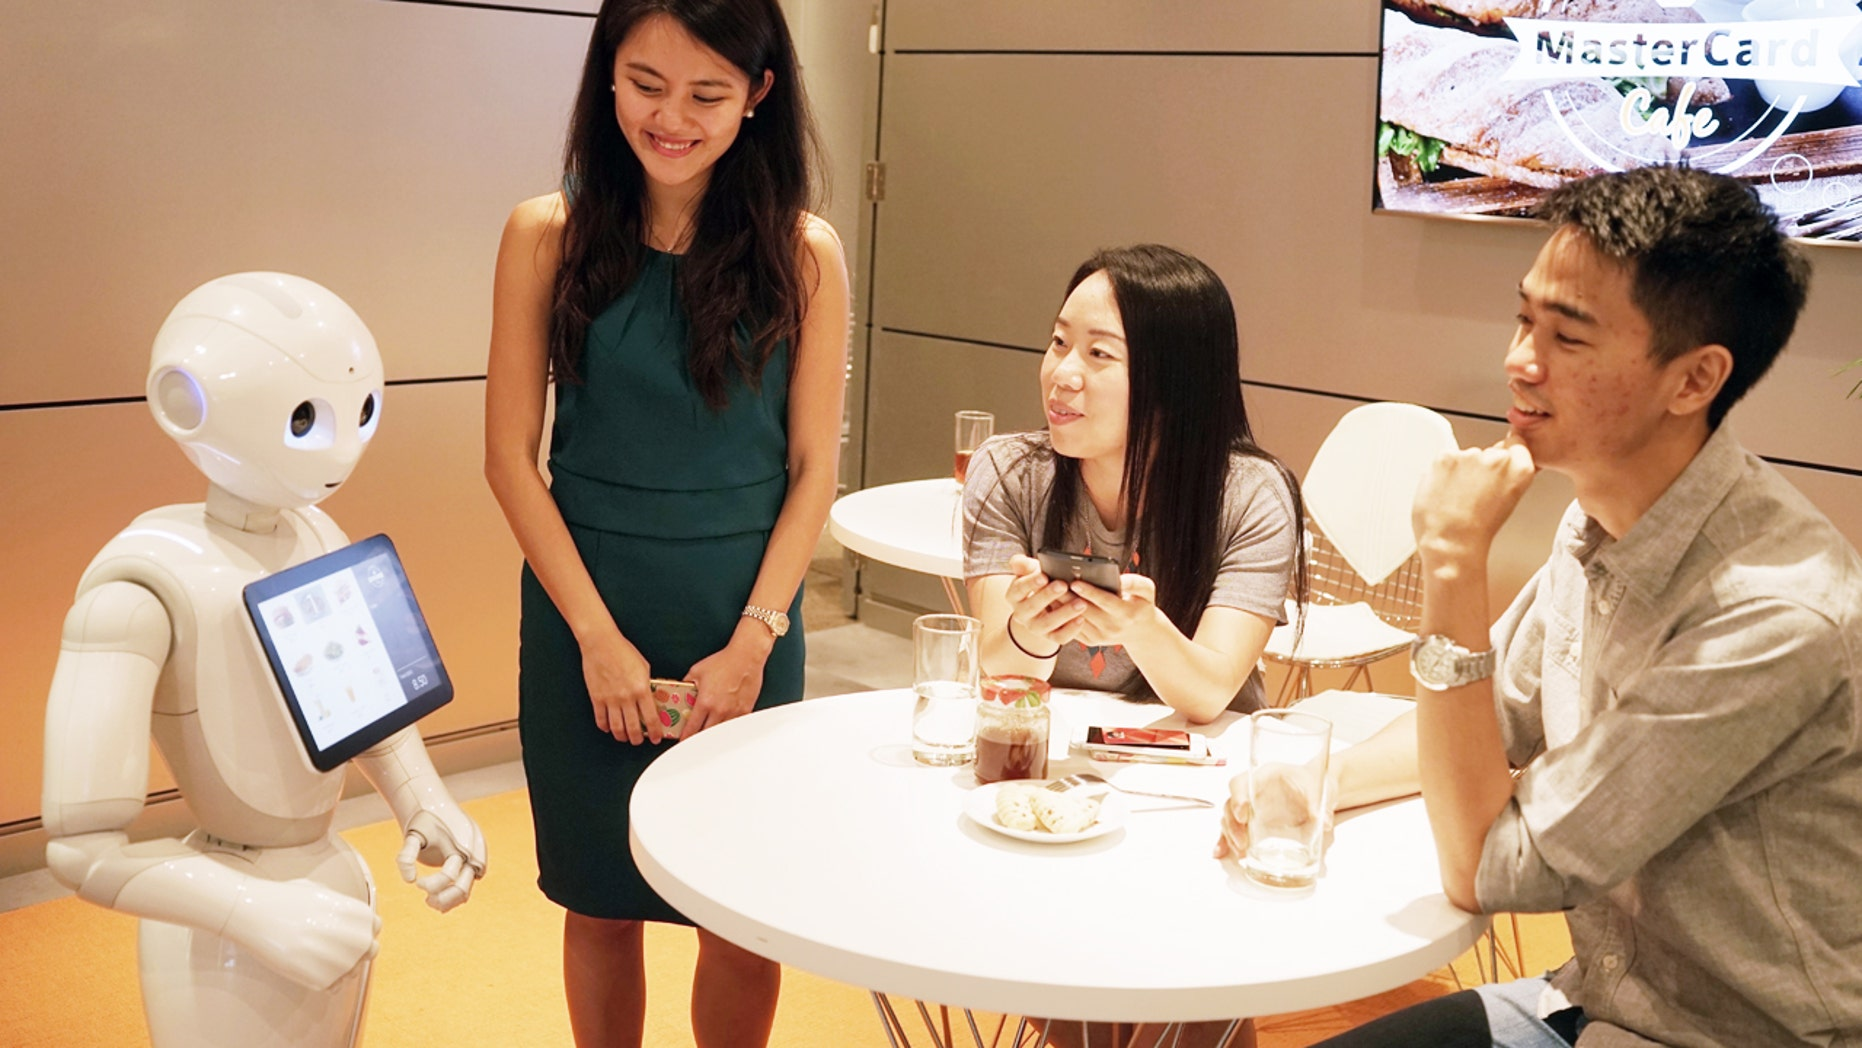 The future of fast food? Pepper, the humanoid robot, takes customer orders in a Japanese Pizza Hut.